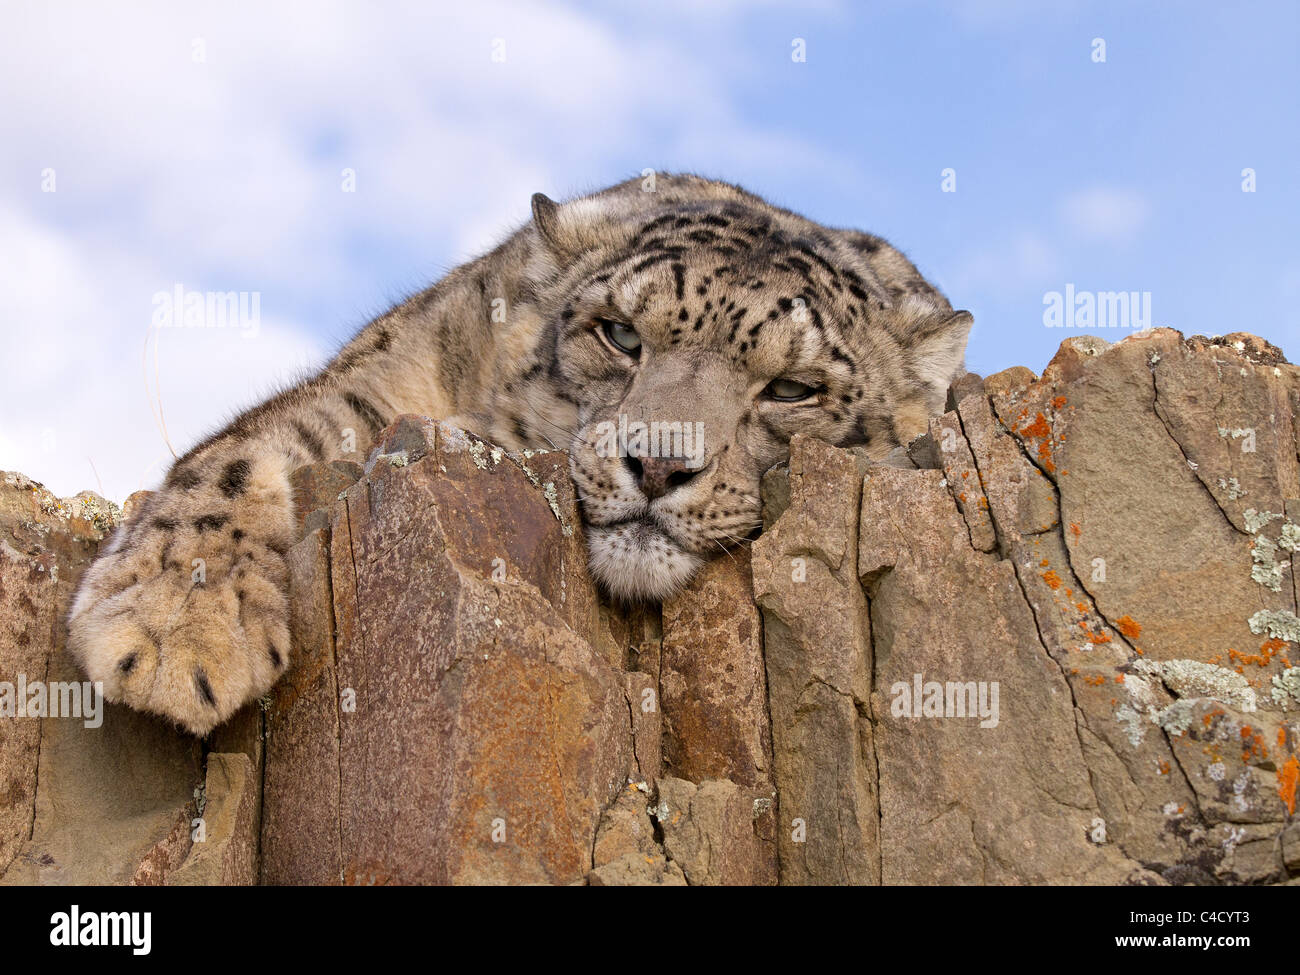 Snow Leopard, Panthera uncia relaxing on the rocks - Stock Image